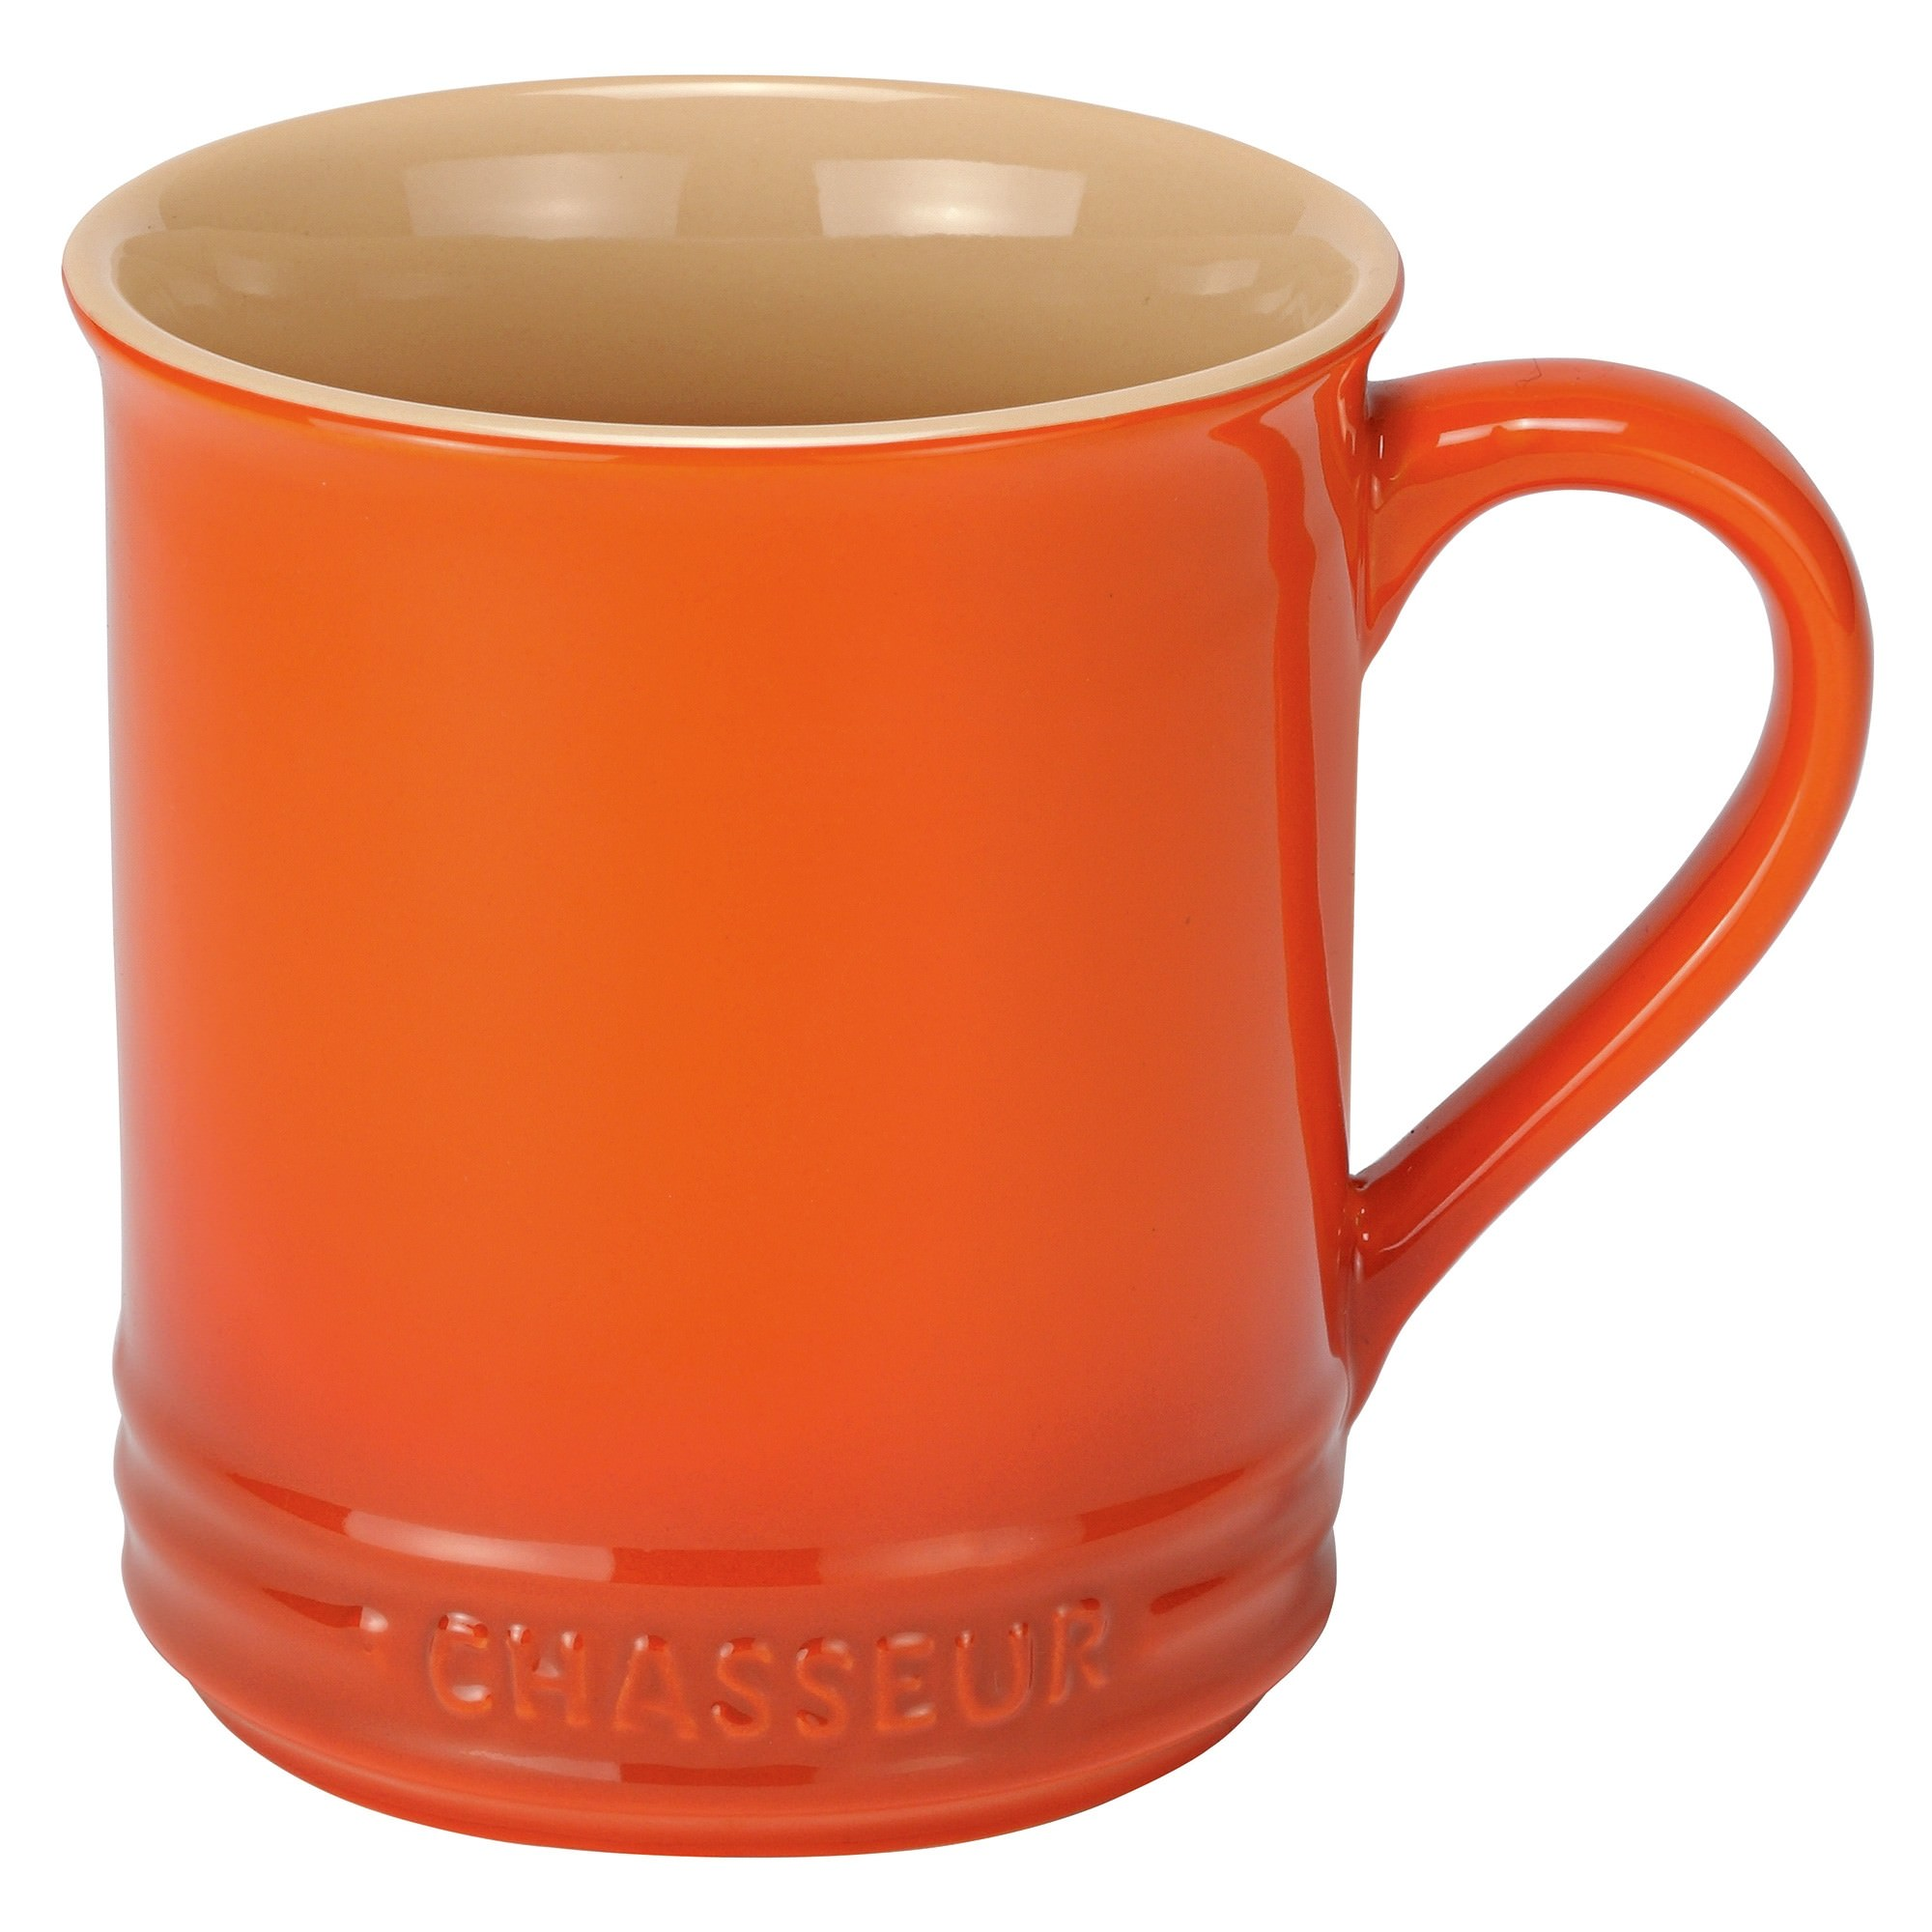 Chasseur La Cuisson 350ml Mug - Orange